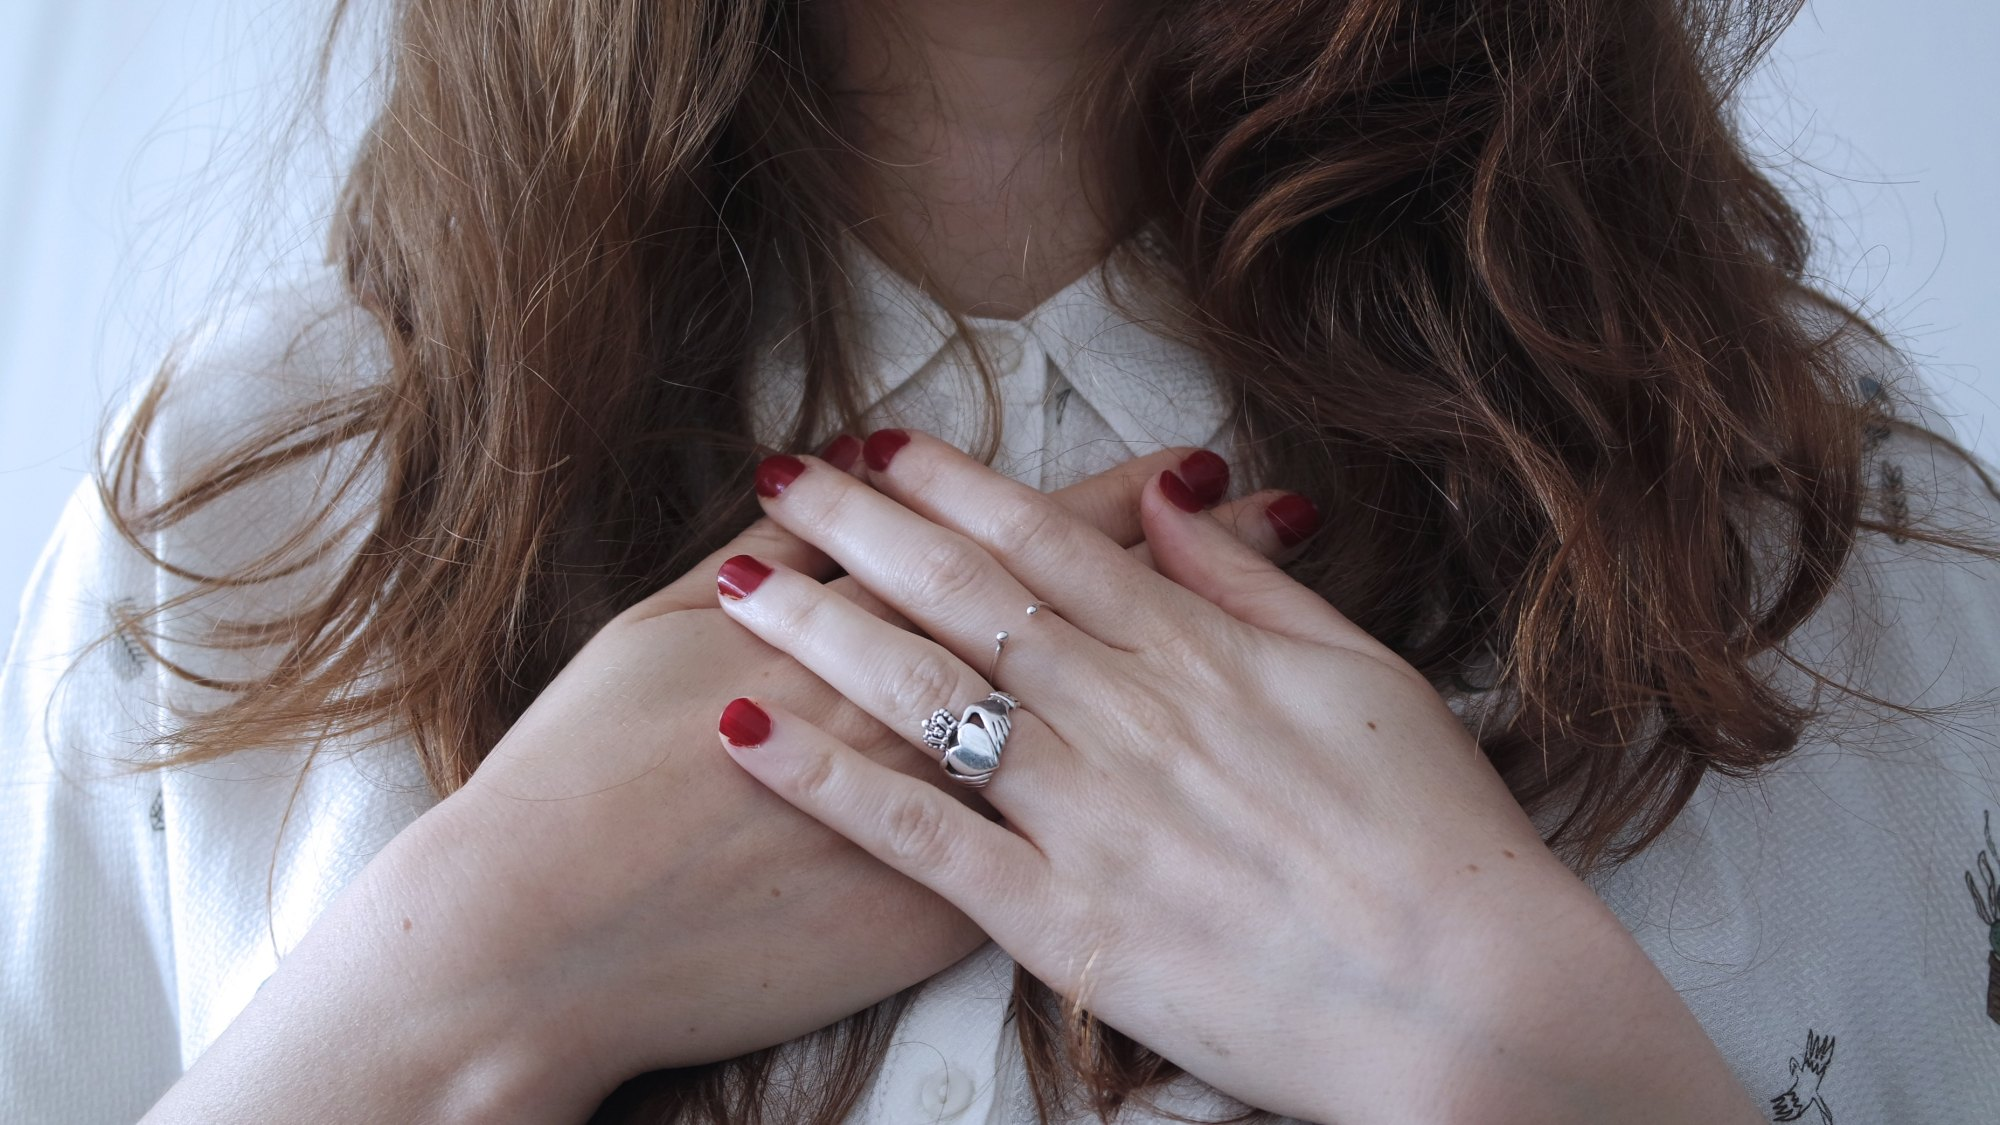 Woman holding her hands over her heart